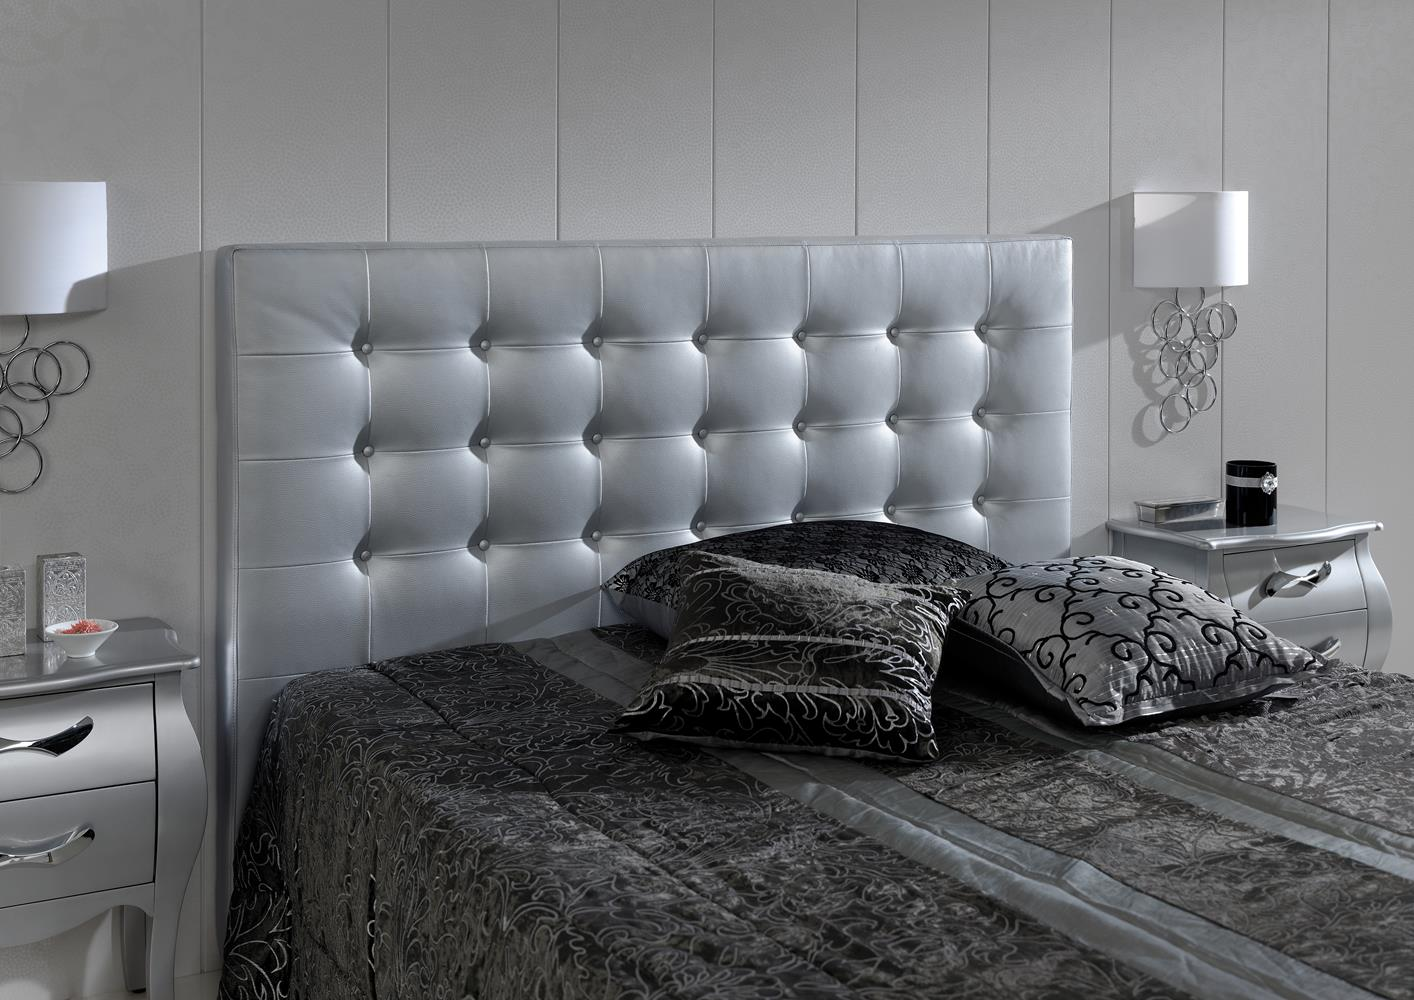 acheter votre t te de lit contemporaine en pvc blanc chez. Black Bedroom Furniture Sets. Home Design Ideas